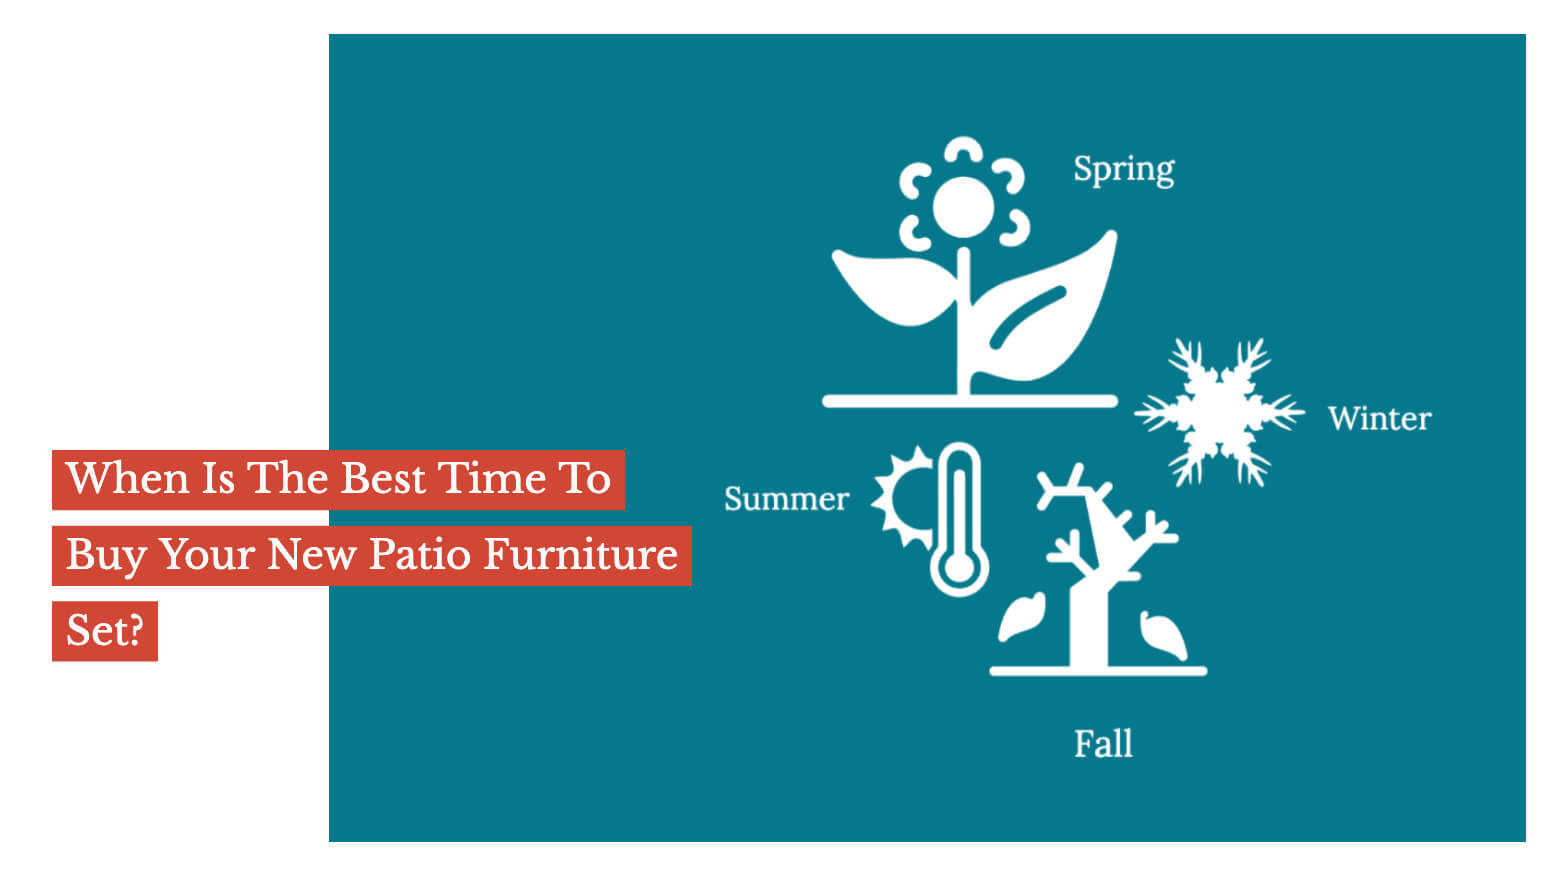 When Is The Best Time To Buy Your New Patio Furniture Set?